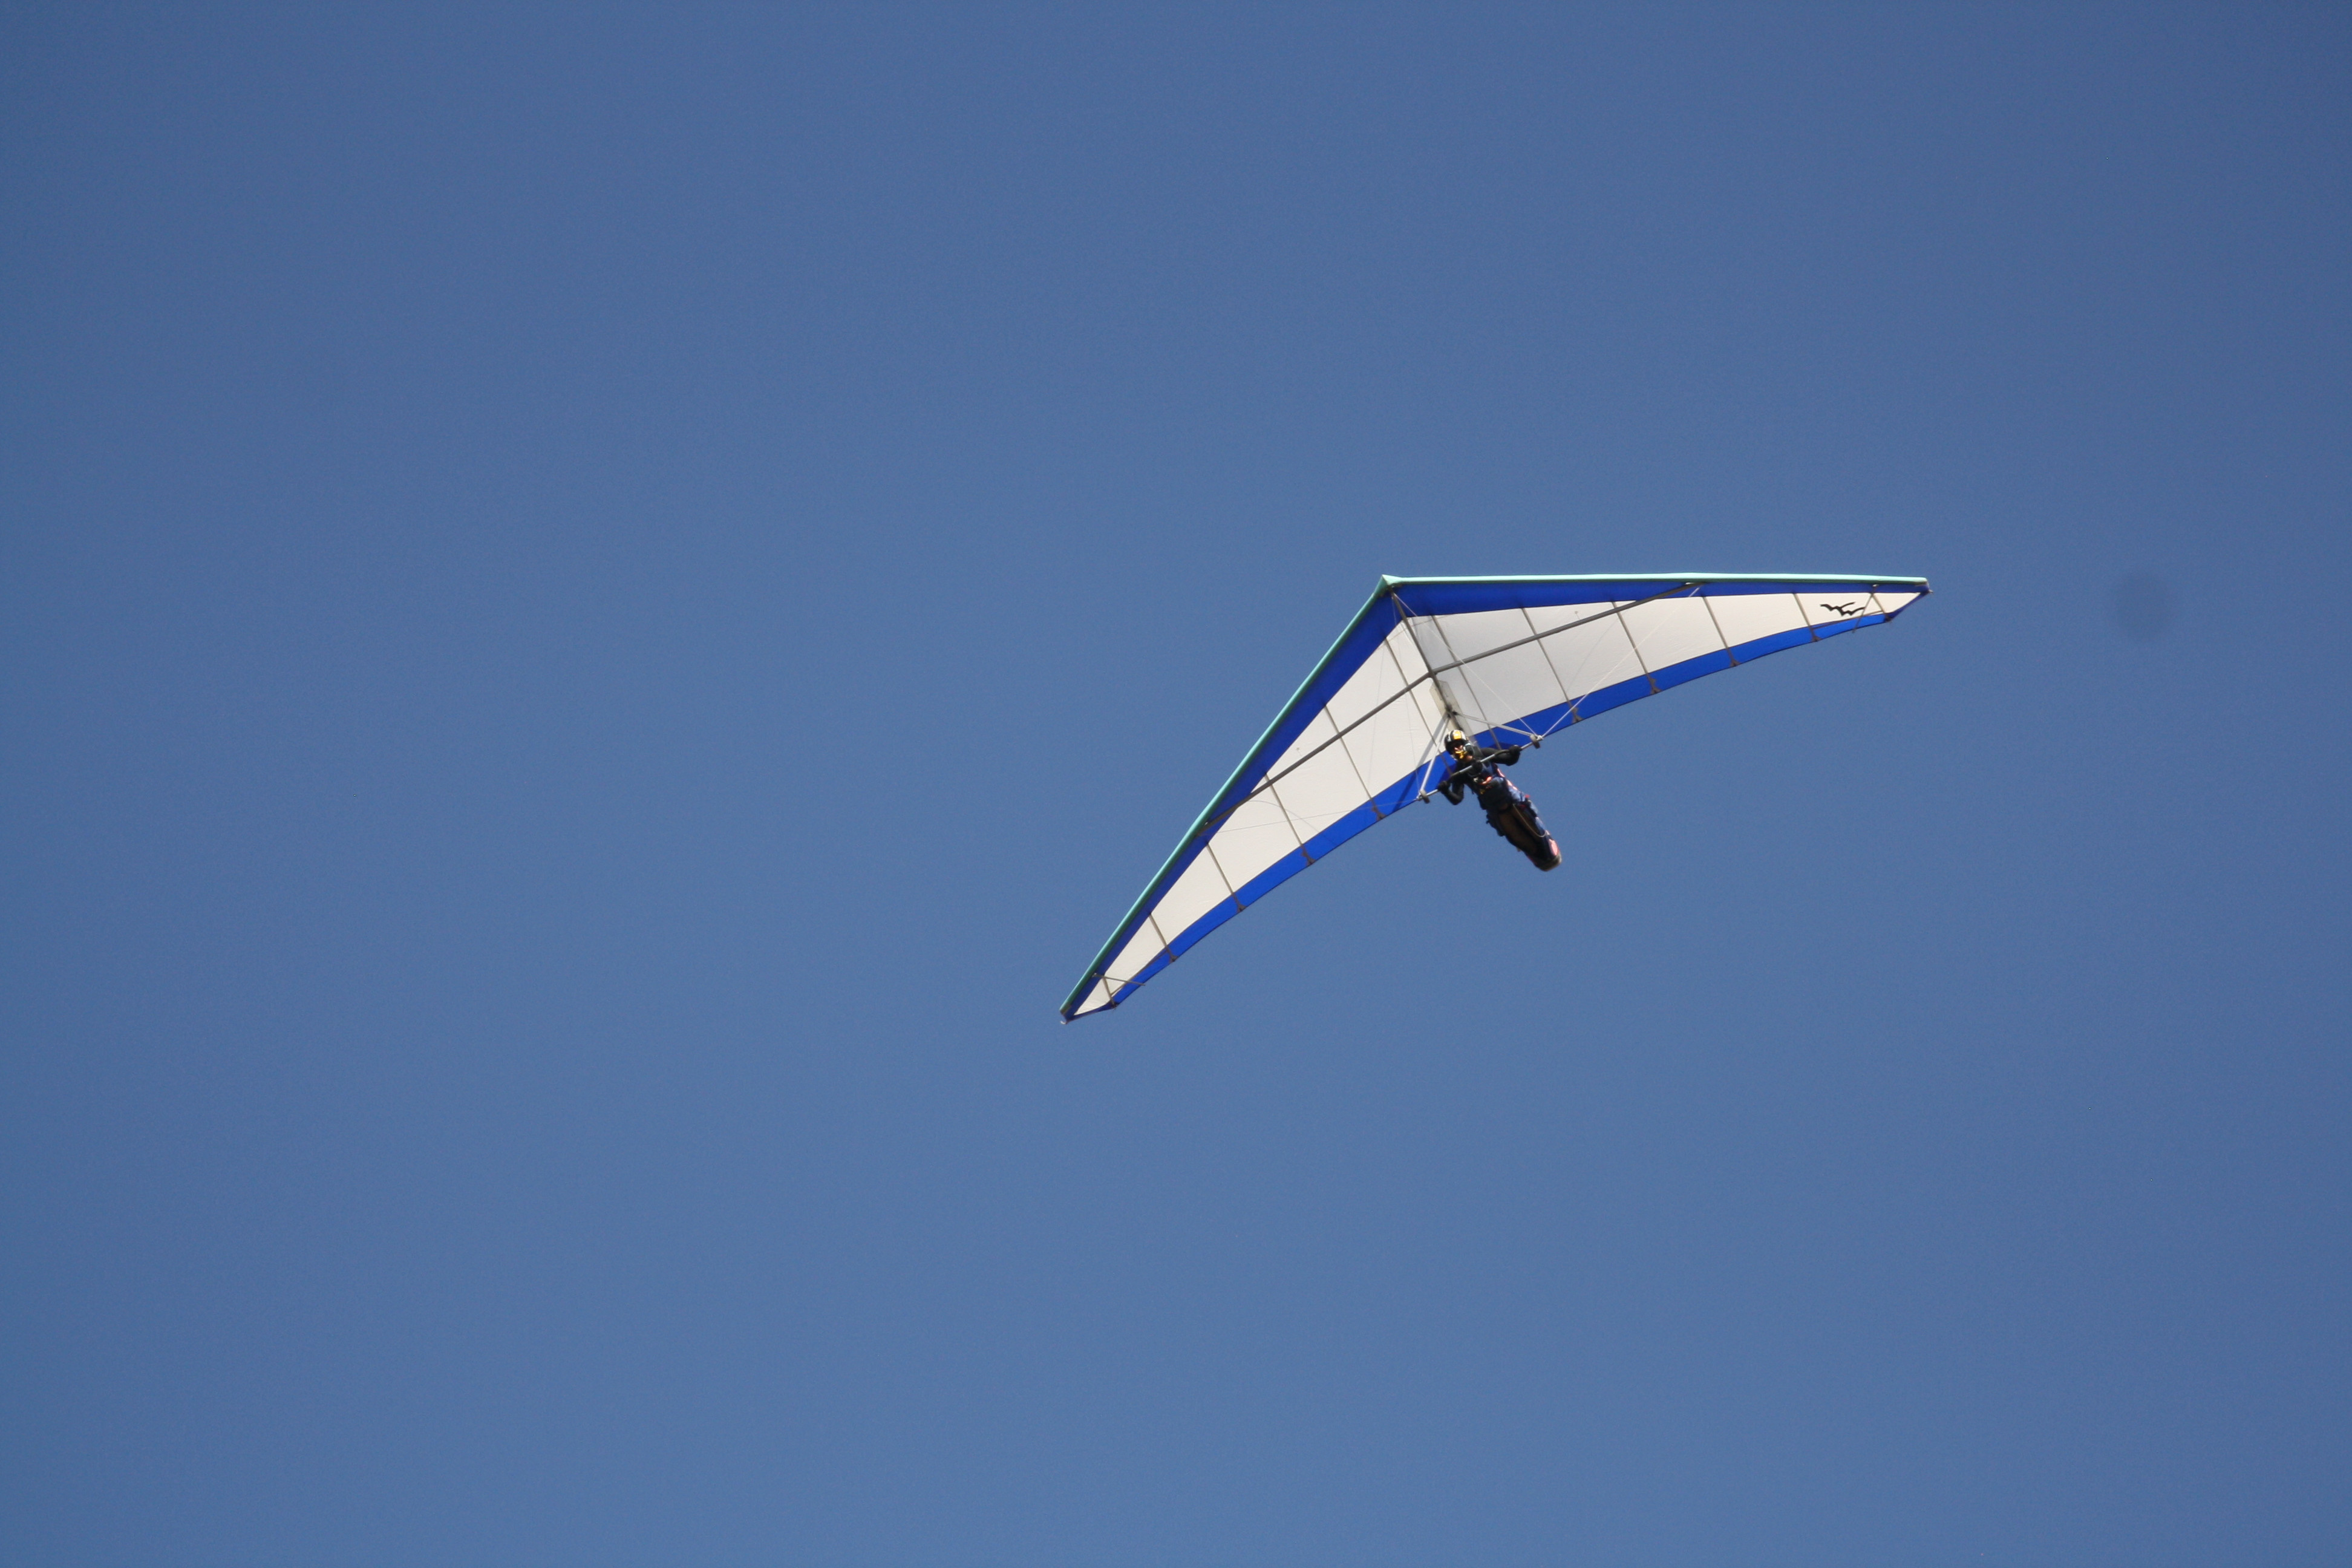 Become a Hang Glider or Paraglider Pilot